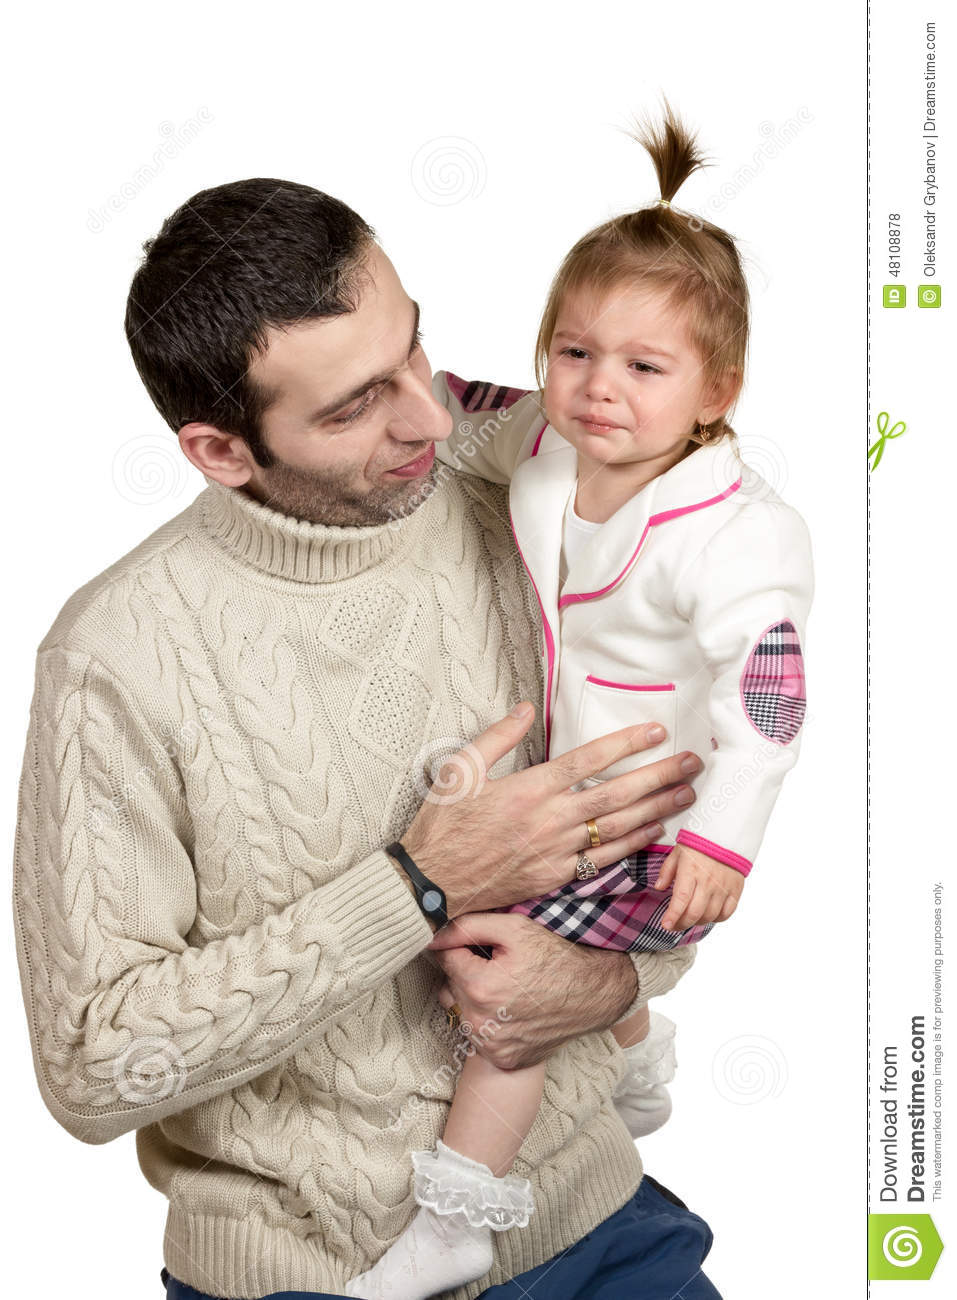 Daughter Crying At The Daddy On His Hands Stock Photo Image Of